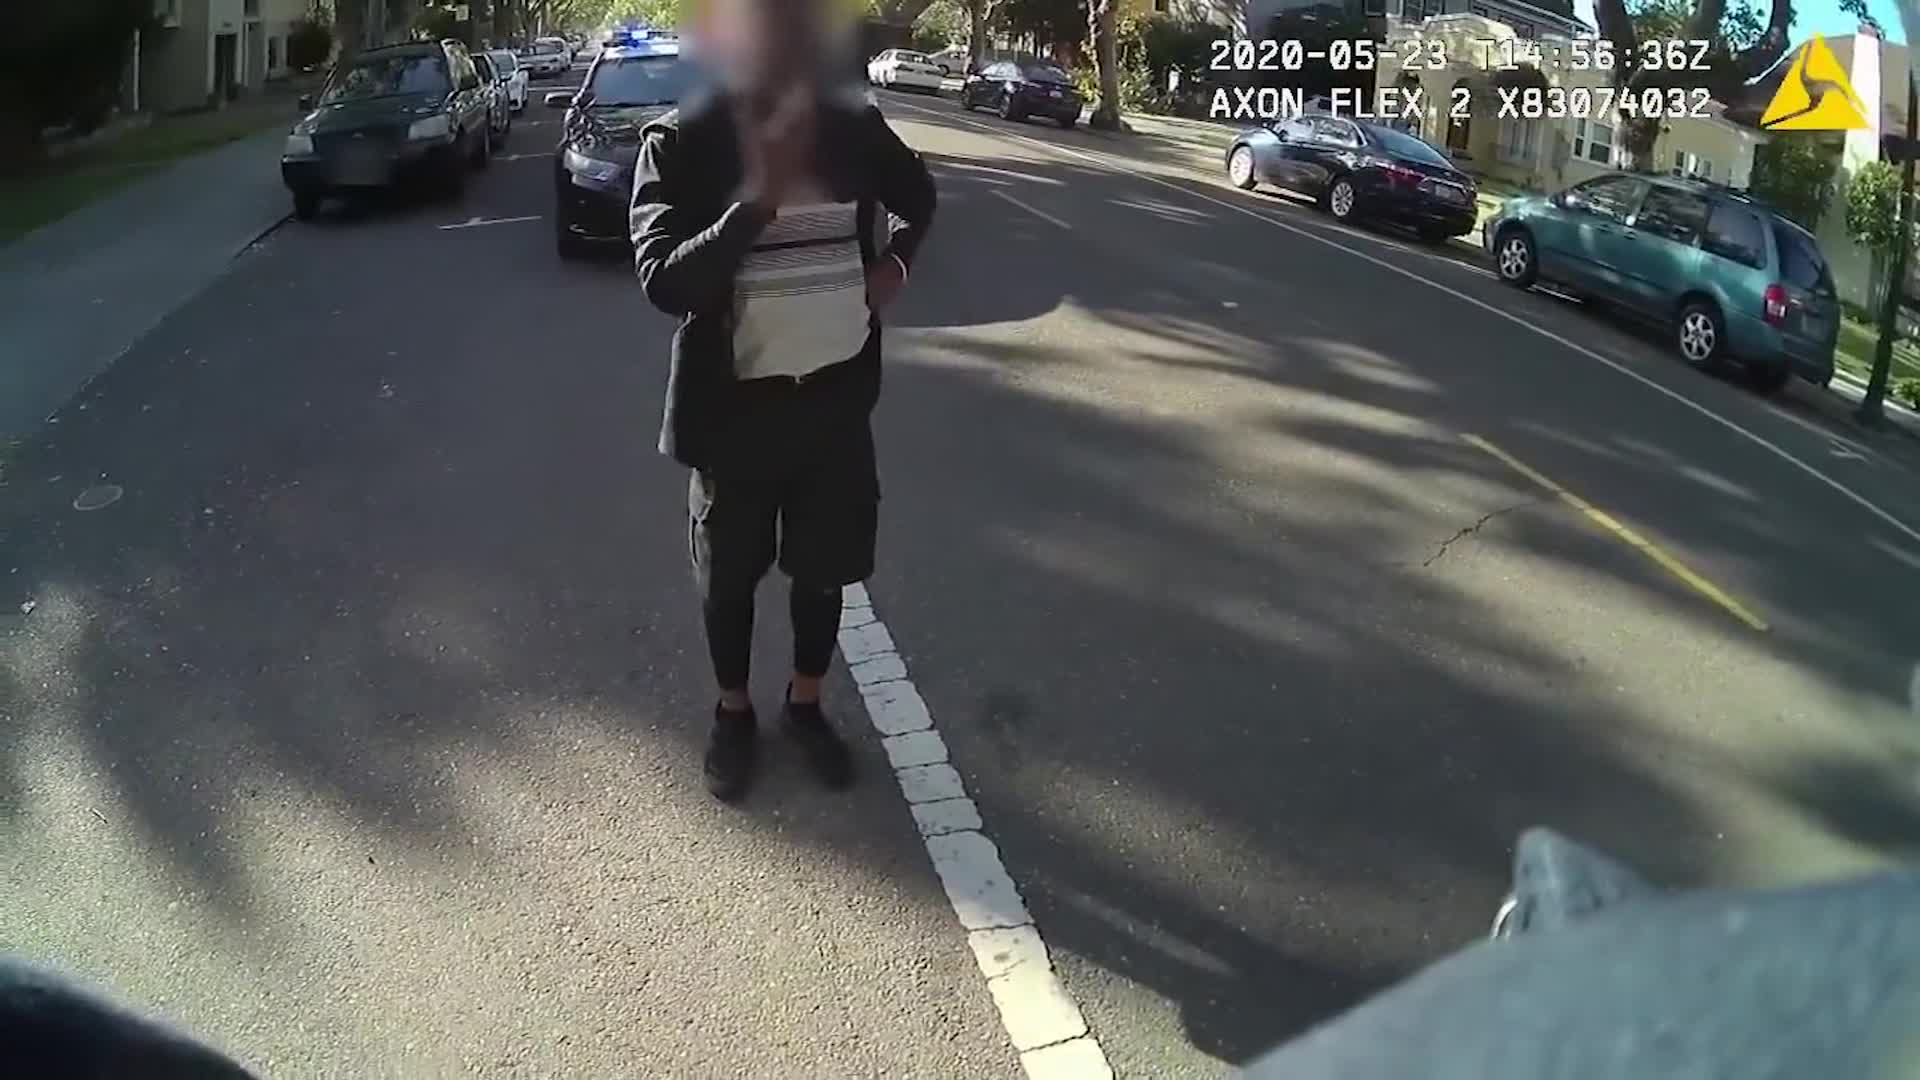 A black man dancing in the street of a Northern California city was pinned to the ground and placed under arrest by police after officers were called to the scene, newly-released officer body cam video shows. His face was blurred by police. (City of Alameda)